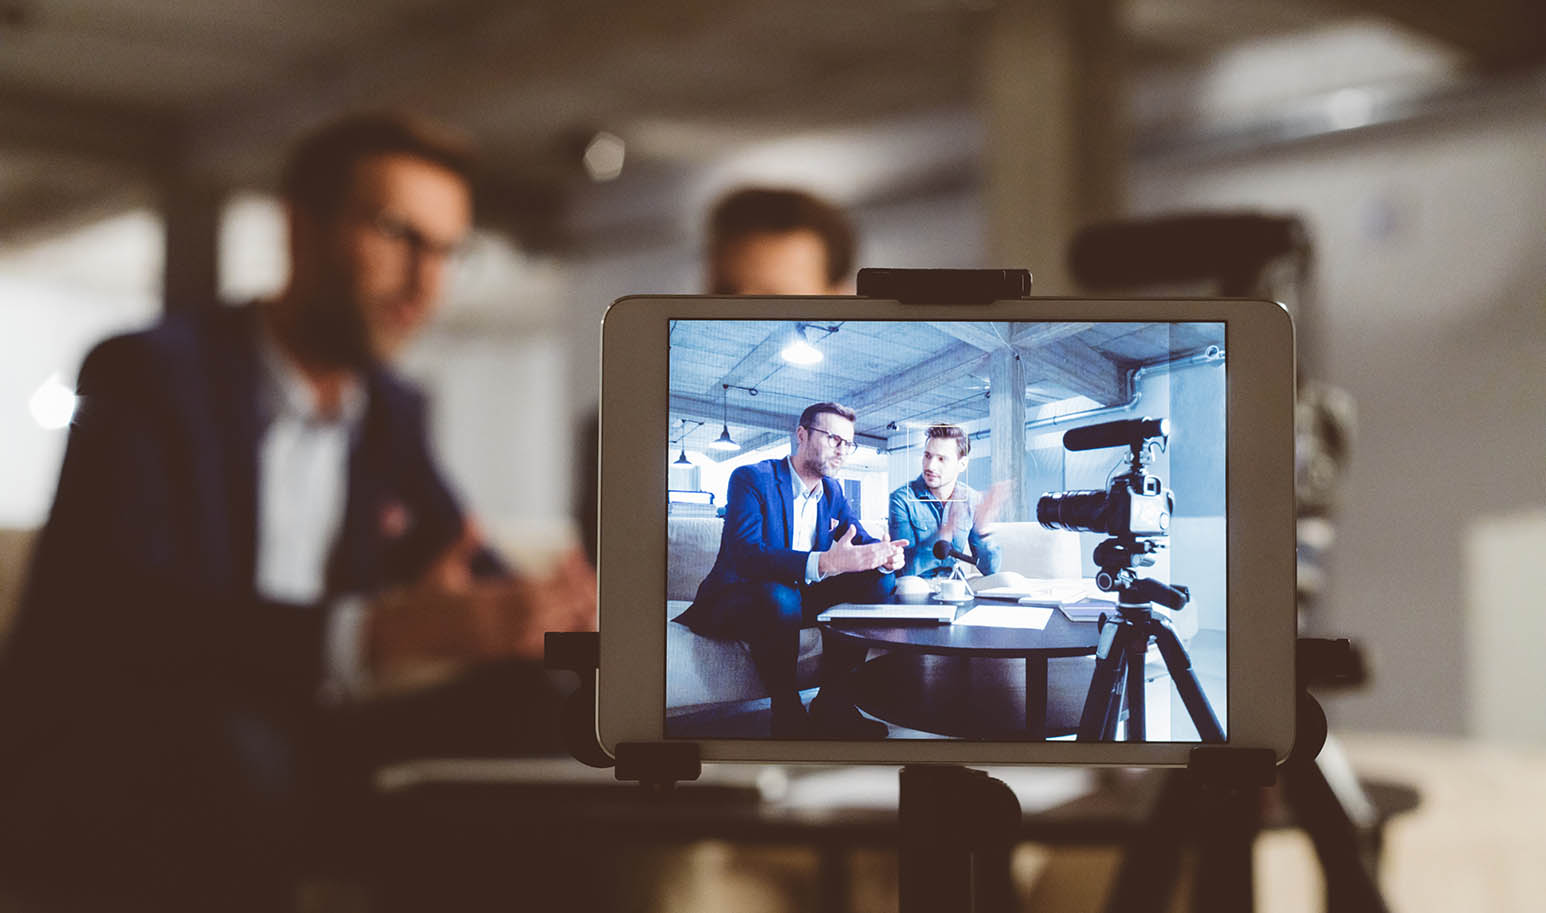 Use explainer videos on your website to describe what your business has to offer and use video tutorials on YouTube to explain how things work.